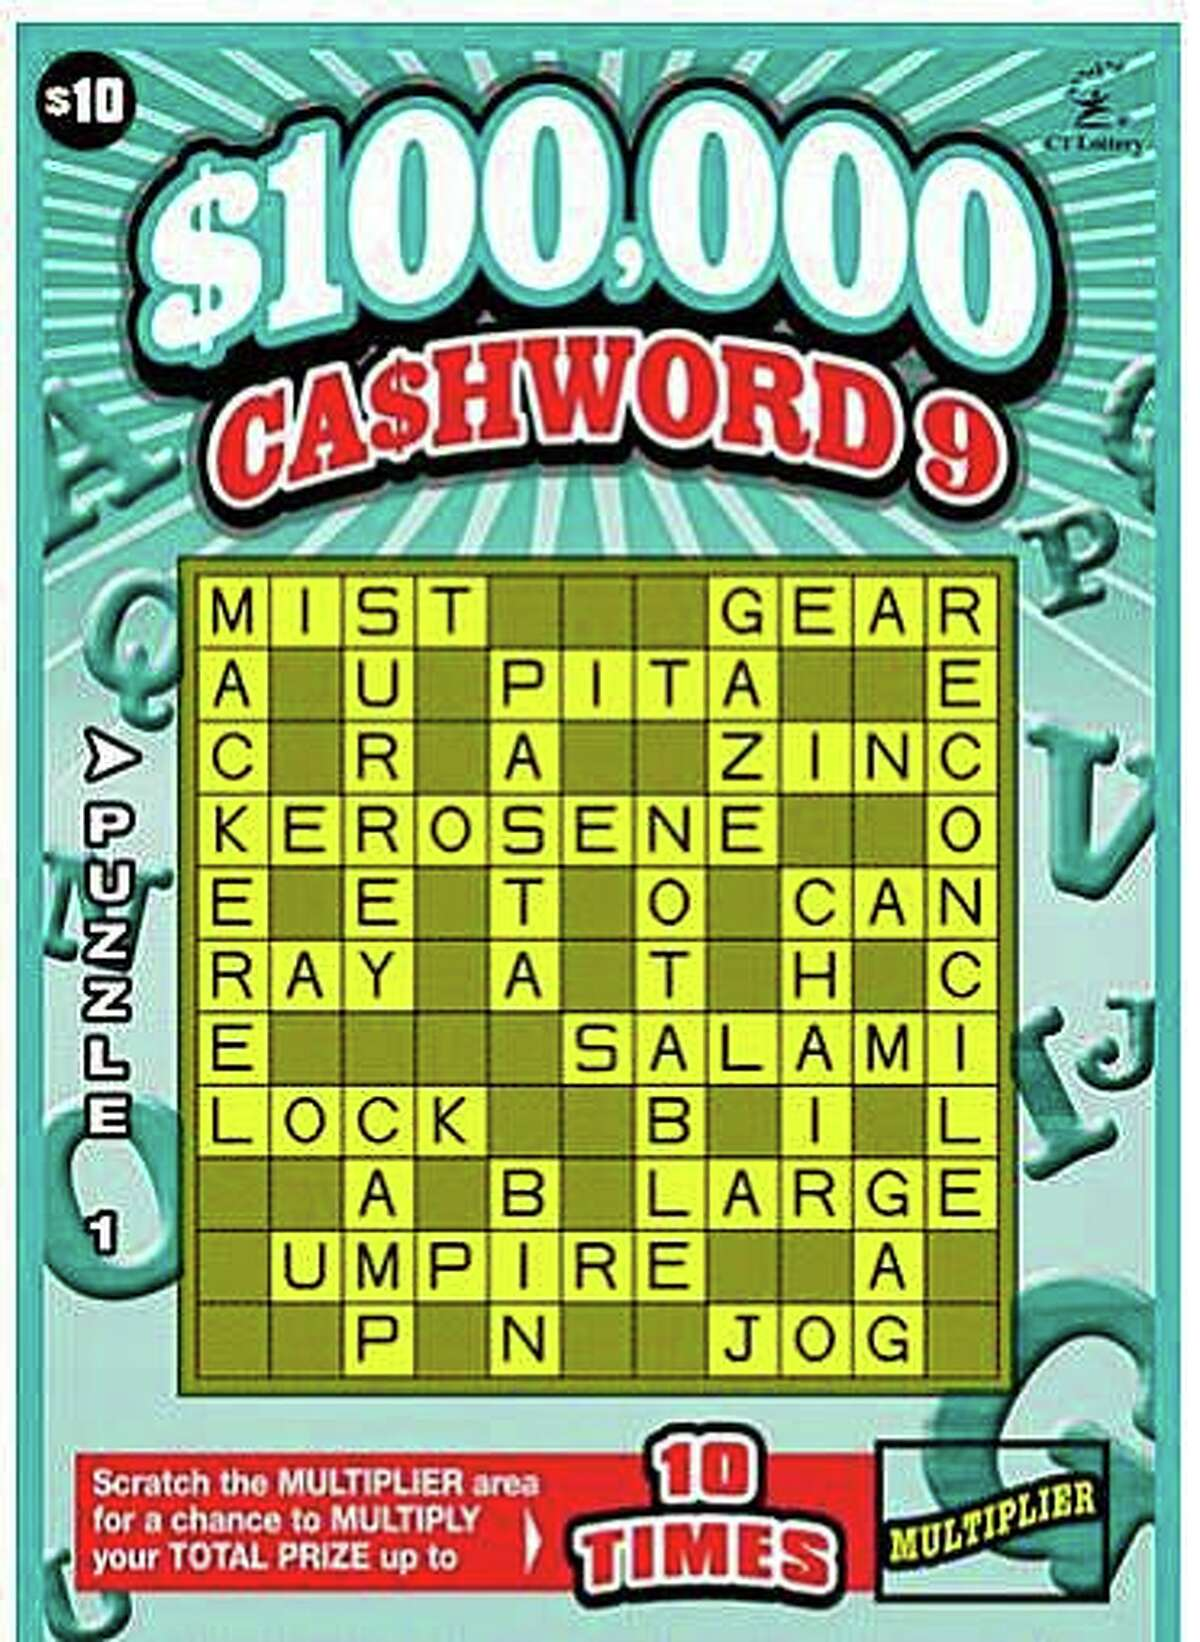 A Torrington woman recently cashed in a winning $10 scratch-off ticket worth $100,000. The odds of winning that top prize in the Cashword instant game is 1 in 250,000.